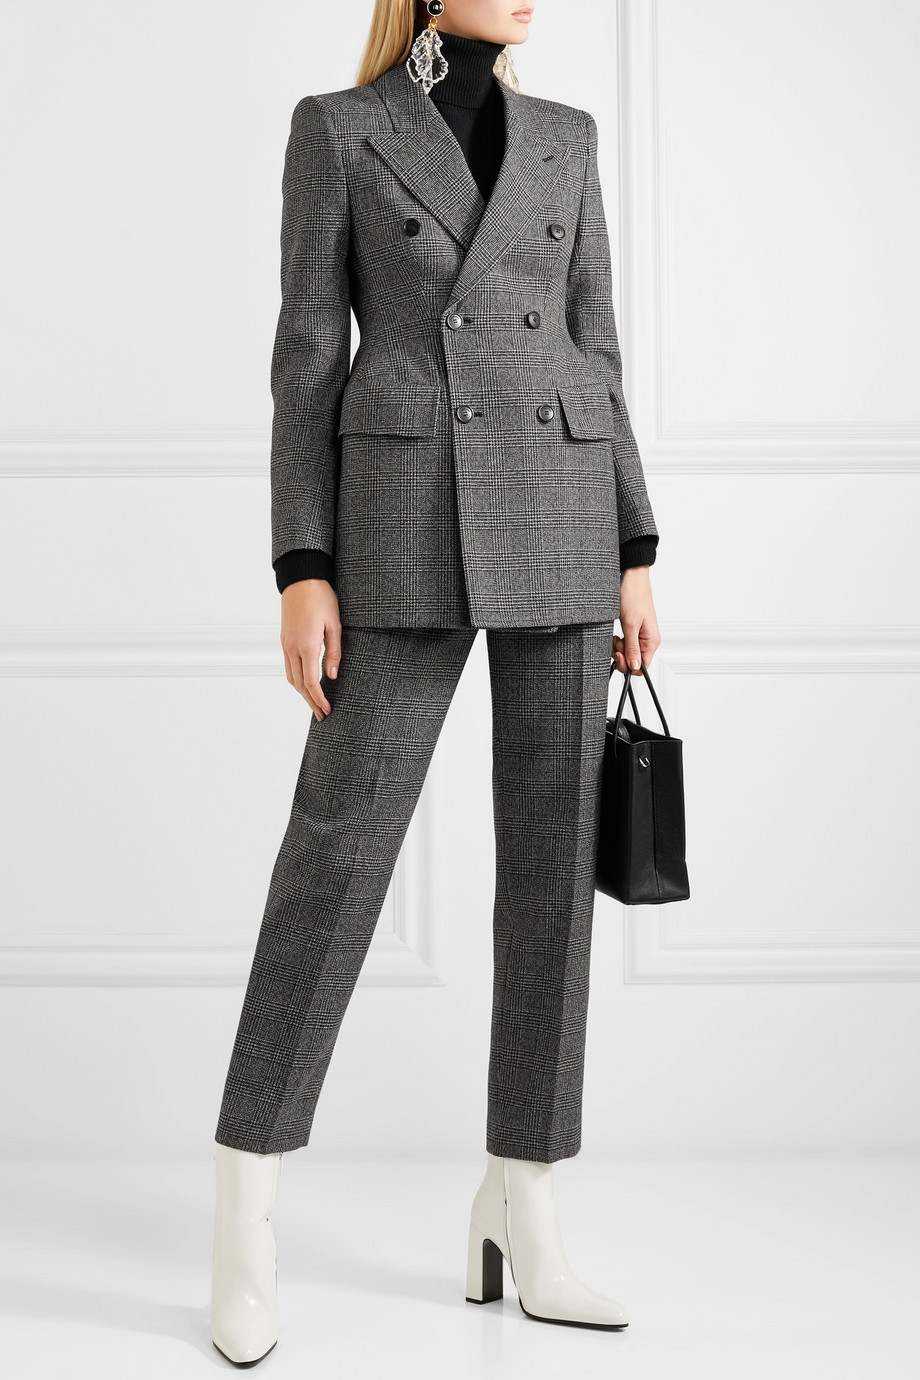 Balenciaga Hourglass Prince of Wales checked wool blazer with internal shoulder pads $2,990